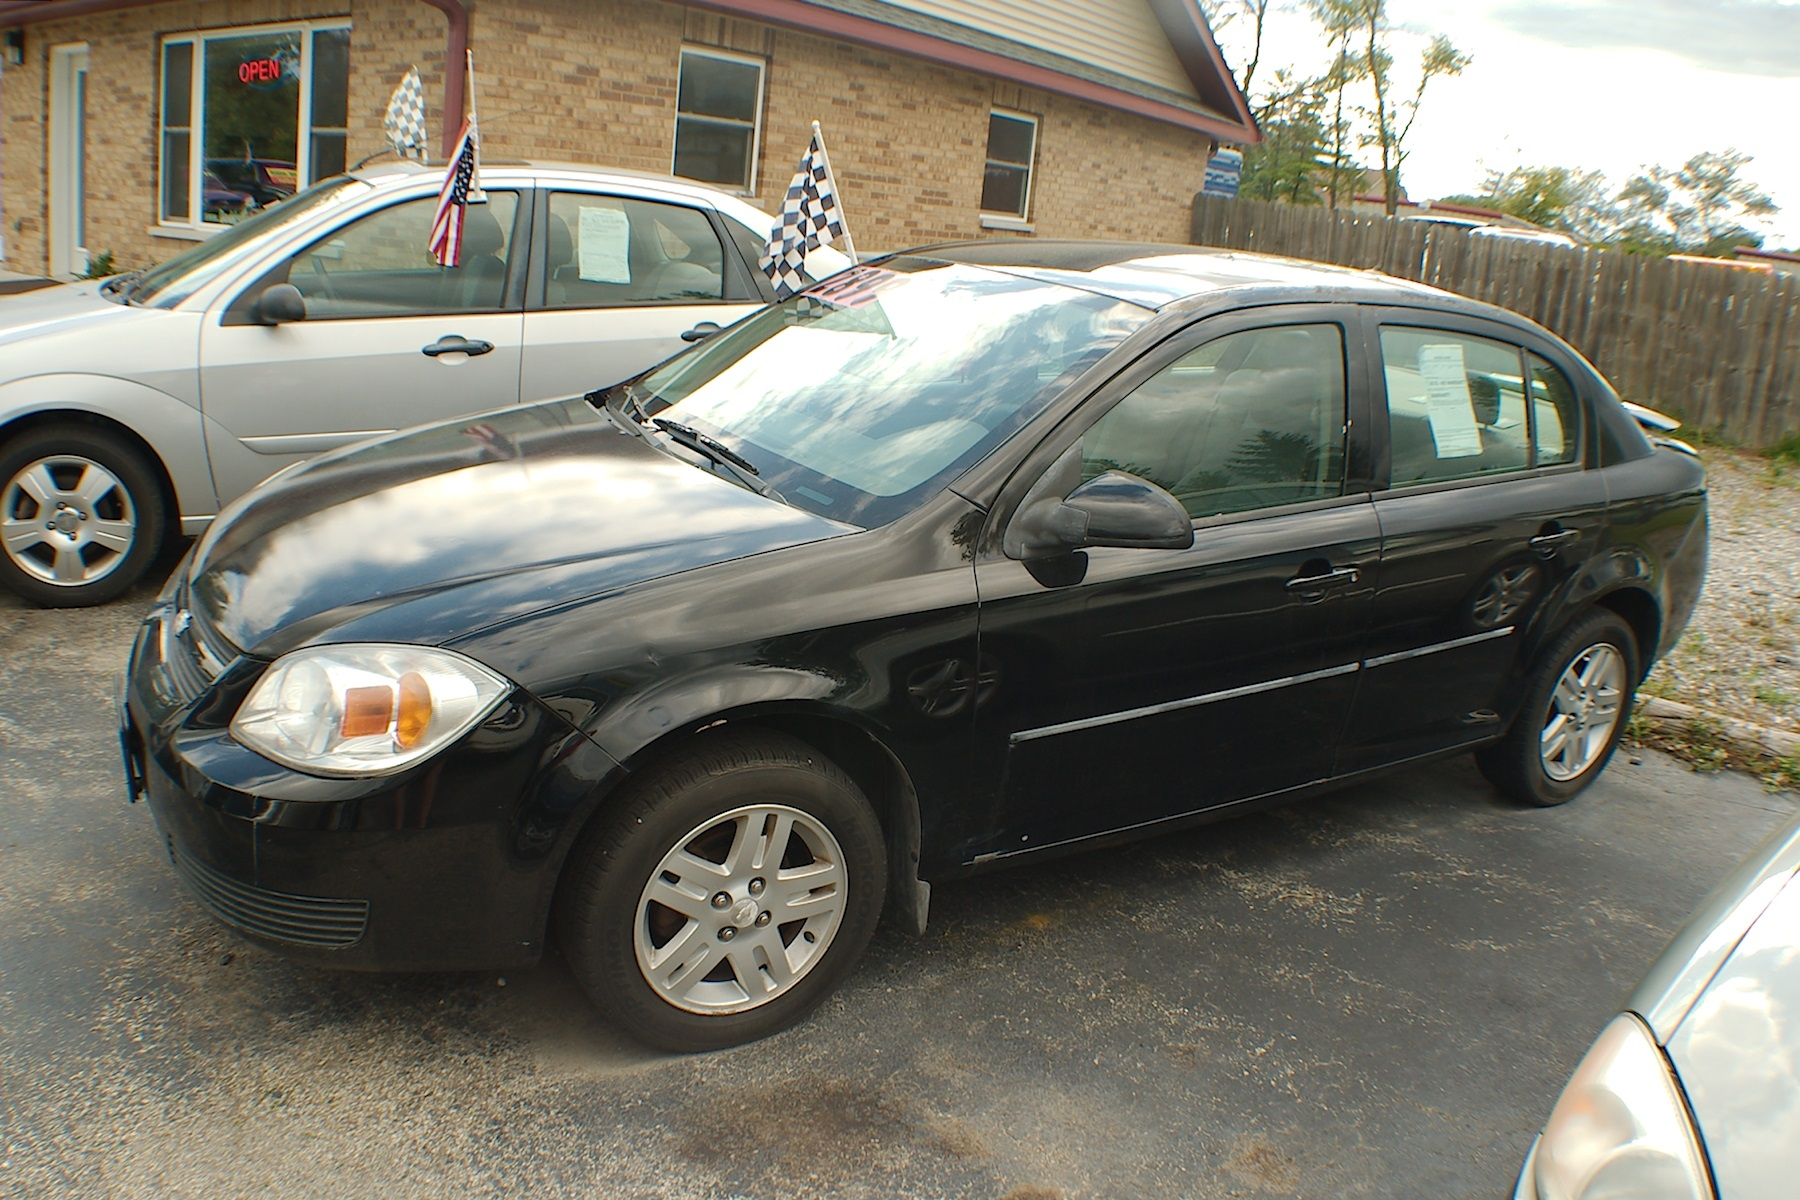 2005 Chevrolet Cobalt LS Black Sedan Used Car Sale Antioch Zion Waukegan Lake County Illinois